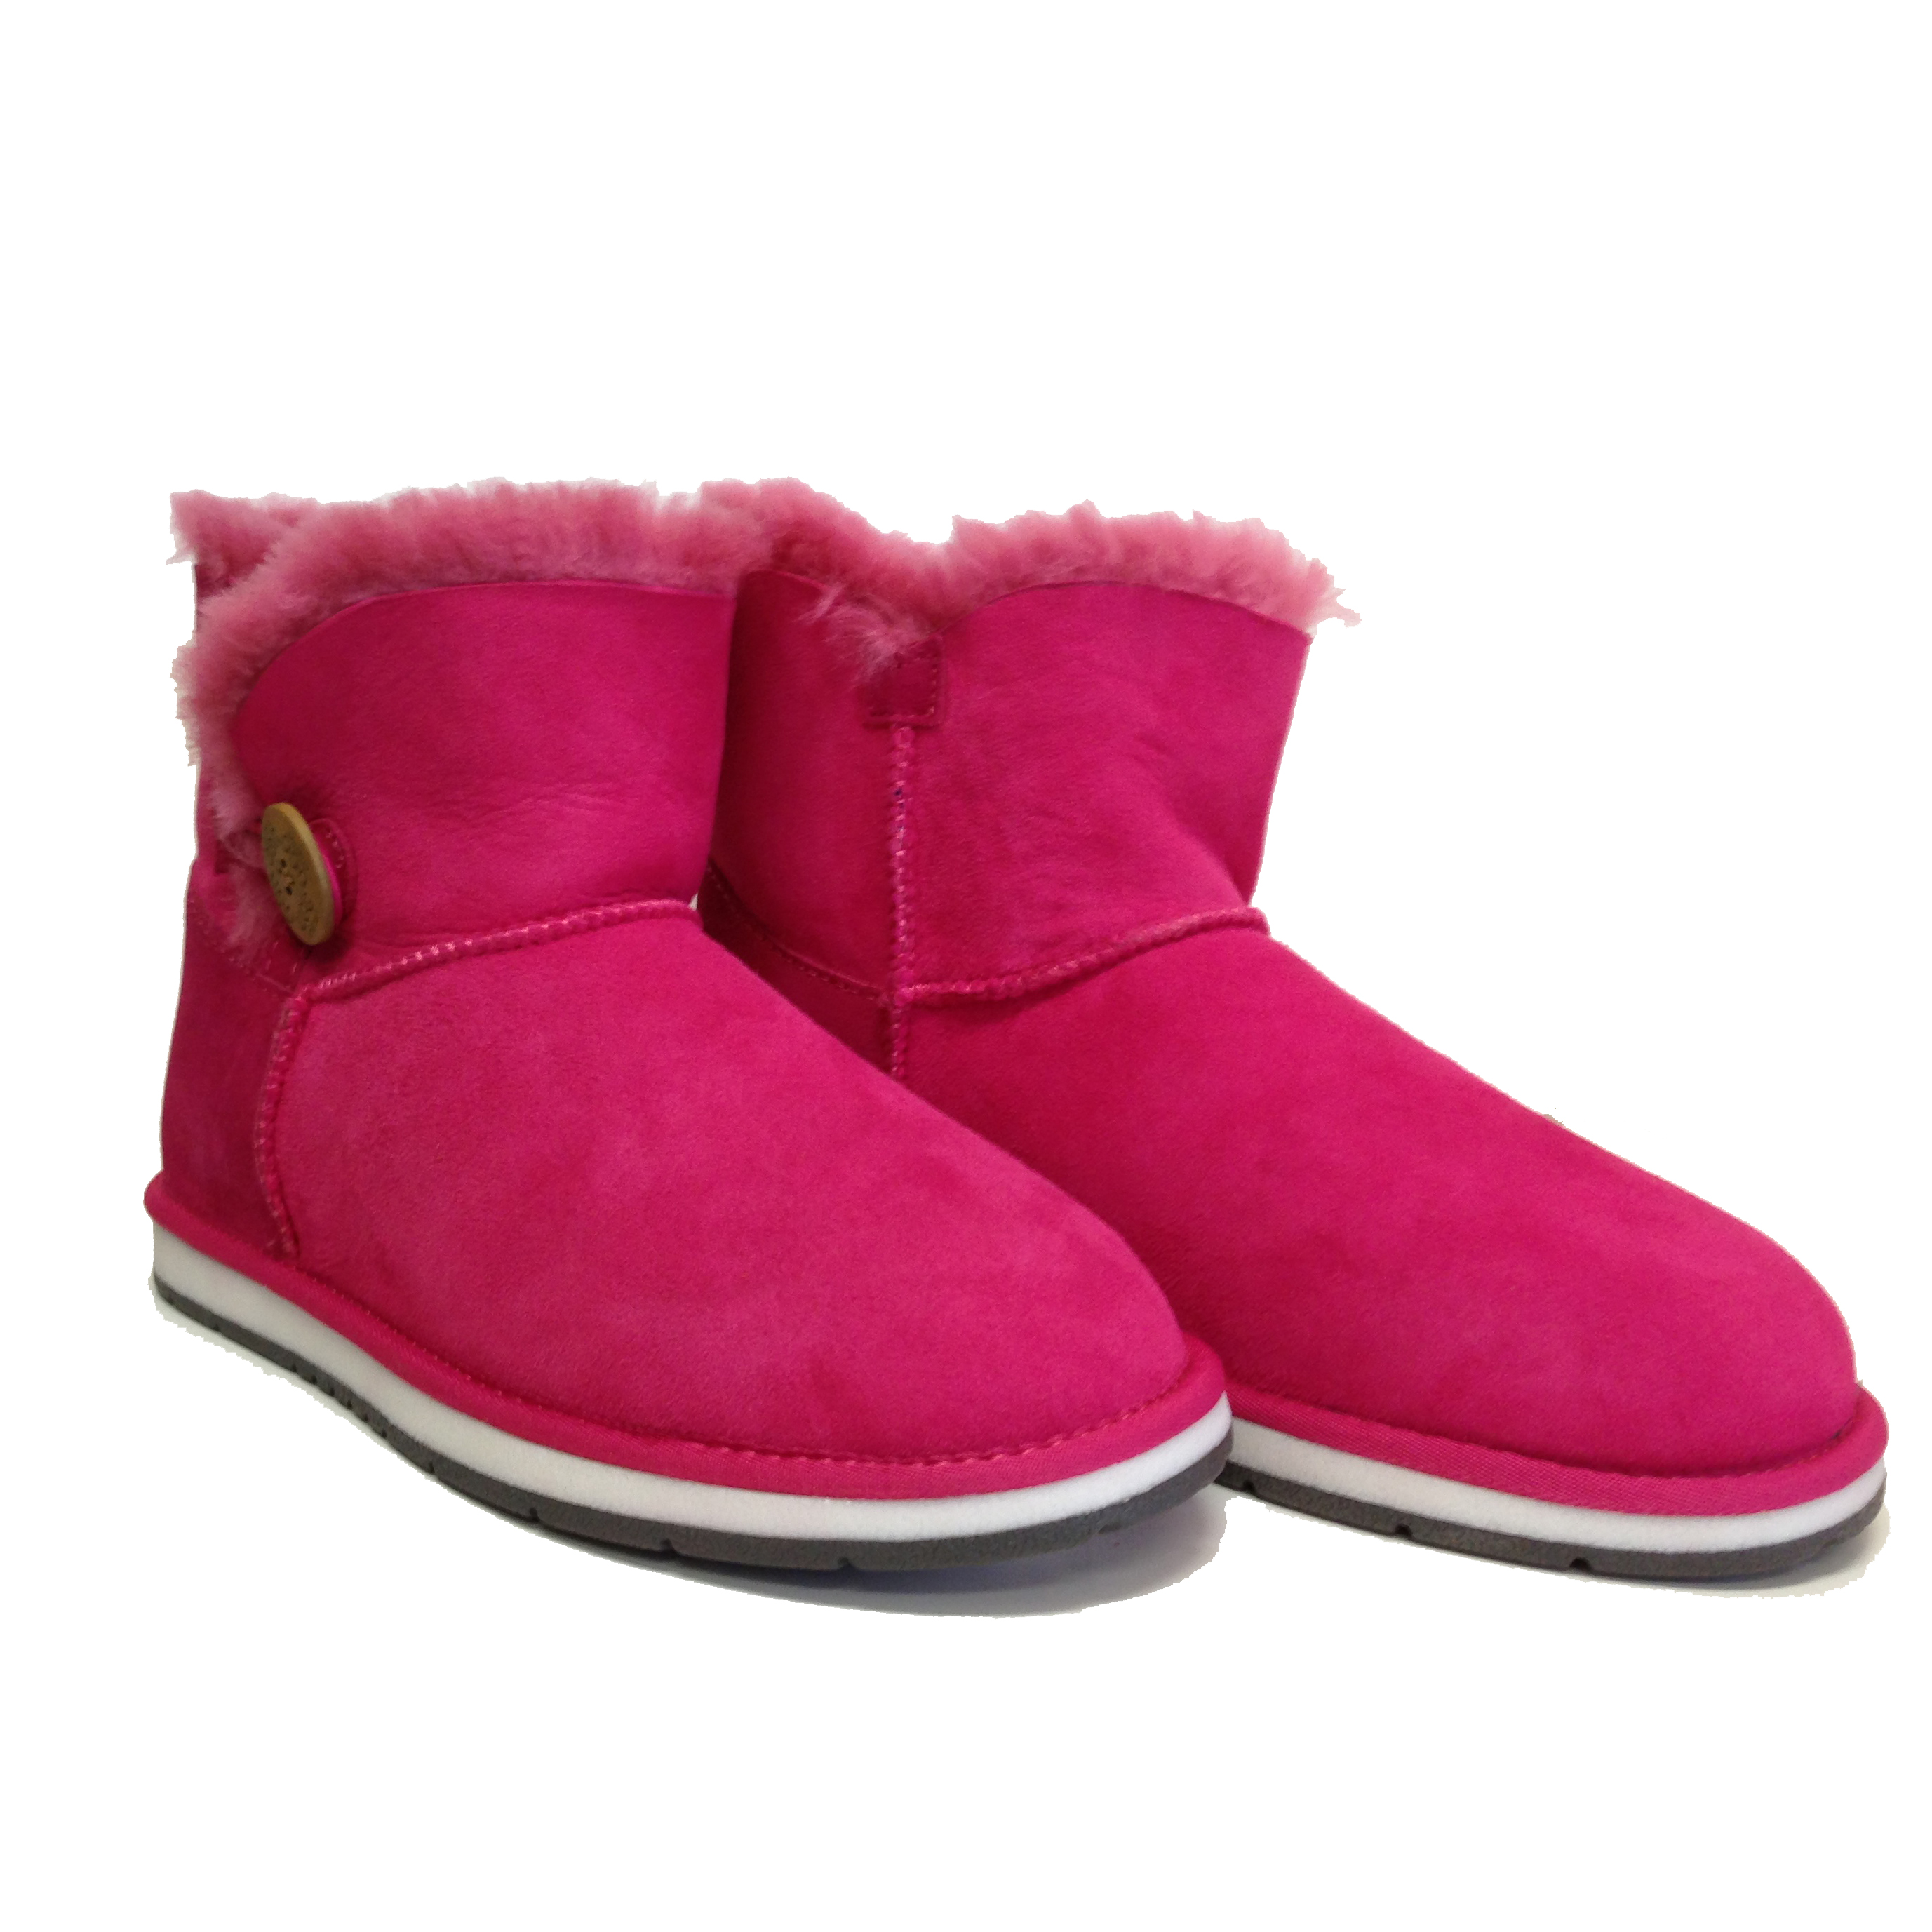 Hot Pink Ugg Boots Uggs Boots Hot Pink